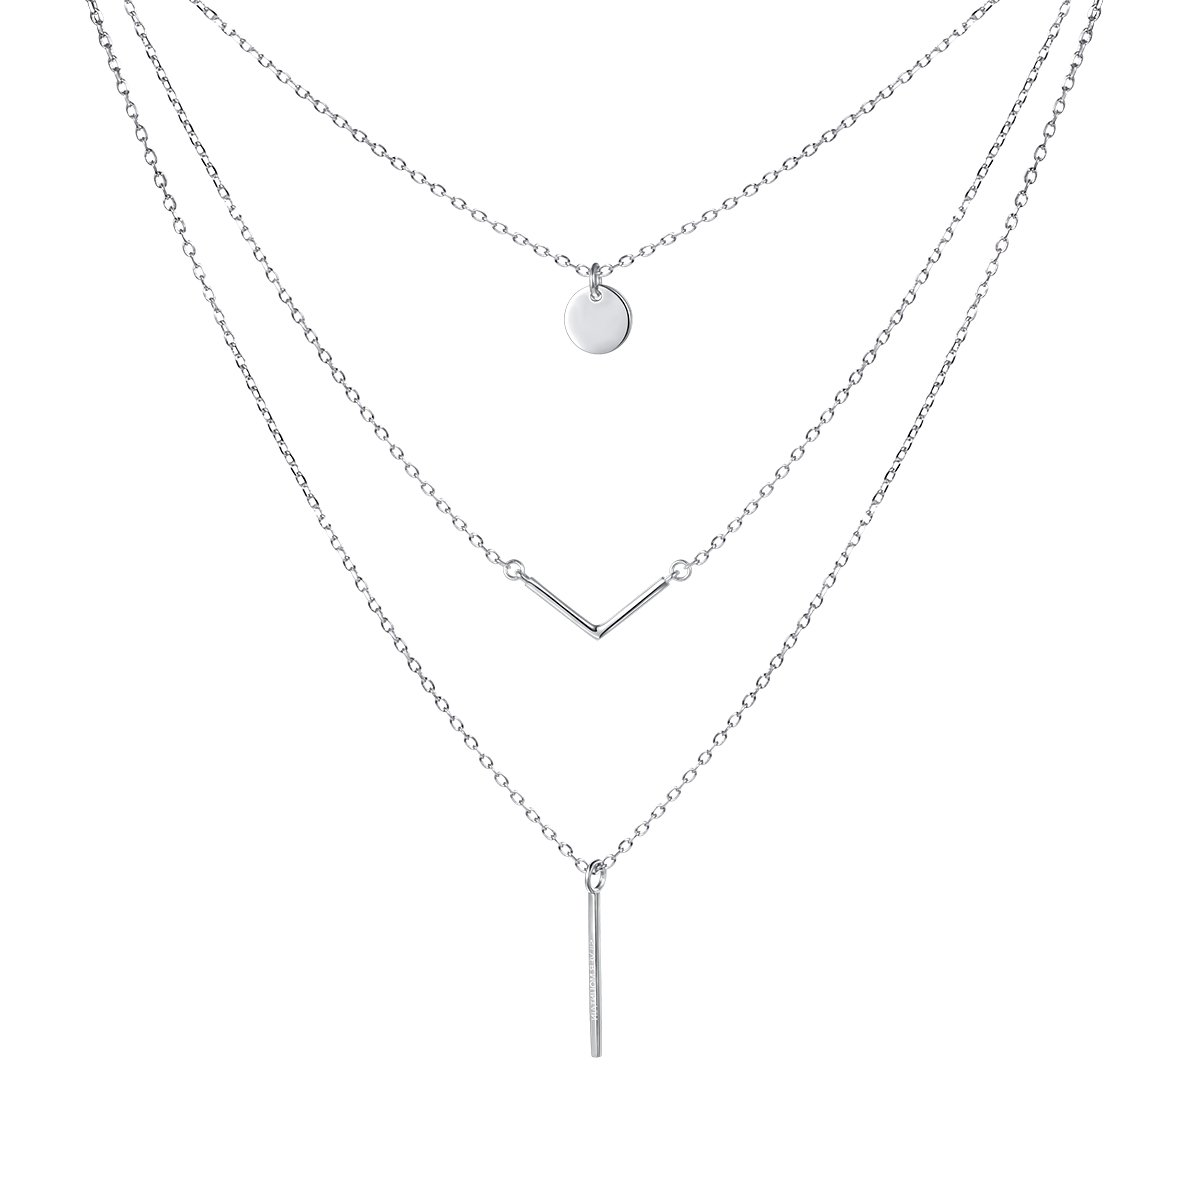 SILVER MOUNTAIN S925 Sterling Silver Triple Layer Pendant Choker Necklace for Women 16''+2''